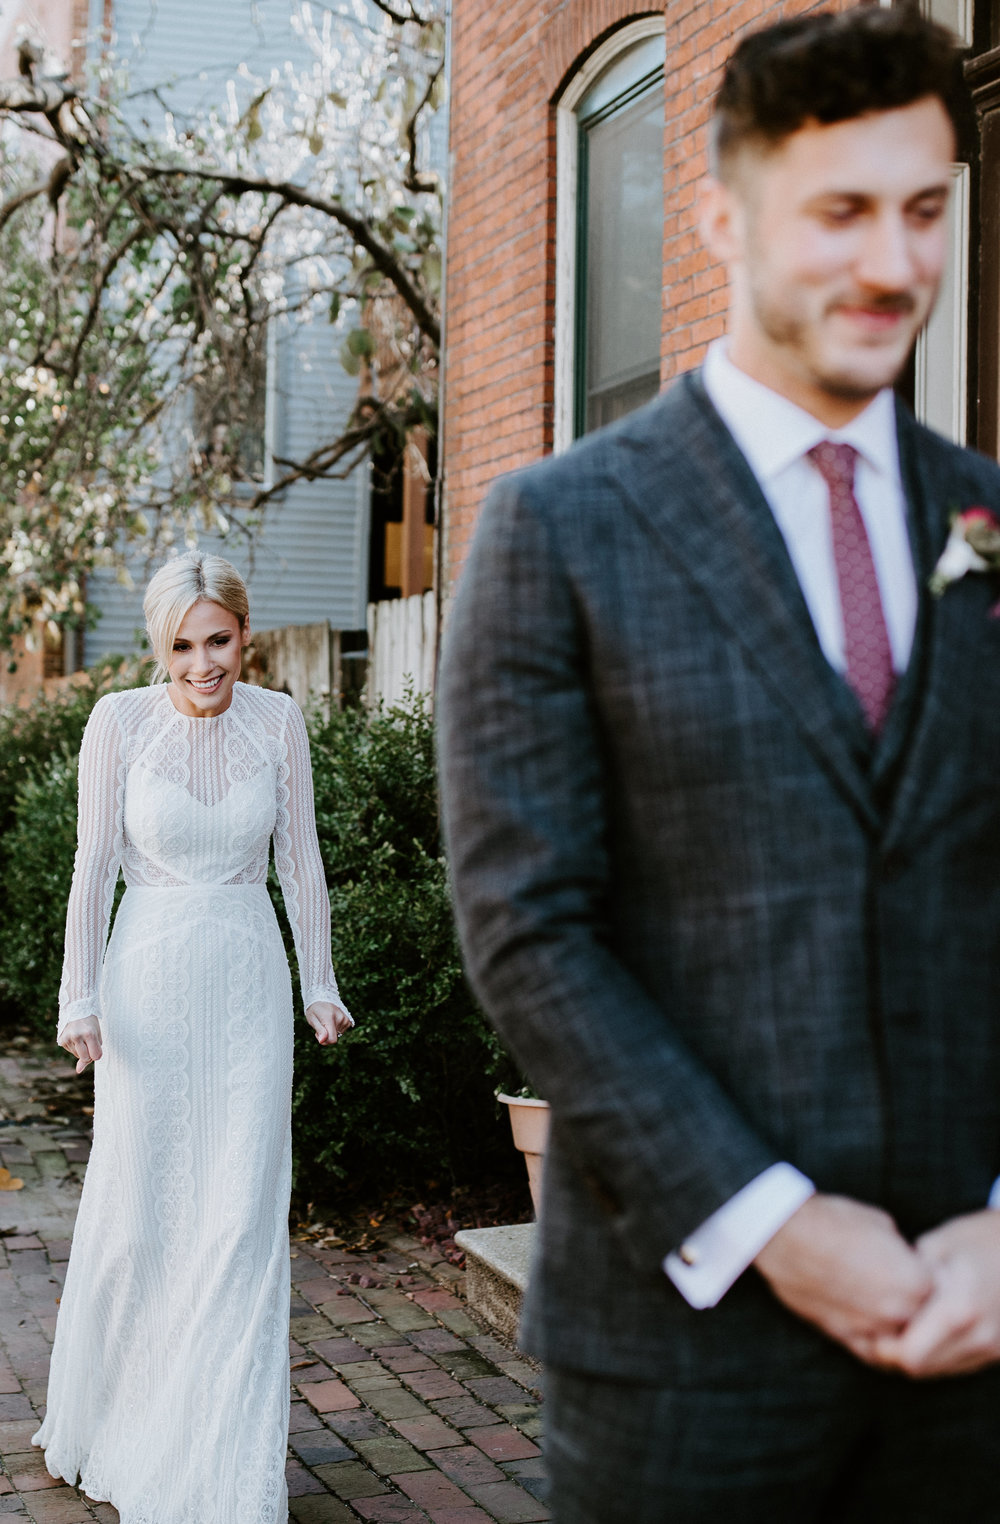 ST_LOUIS_WEDDING_PHOTOGRAPHER_WILD_CARROT_EMILY_AND_JOES_WINTER_WEDDING-228.jpg